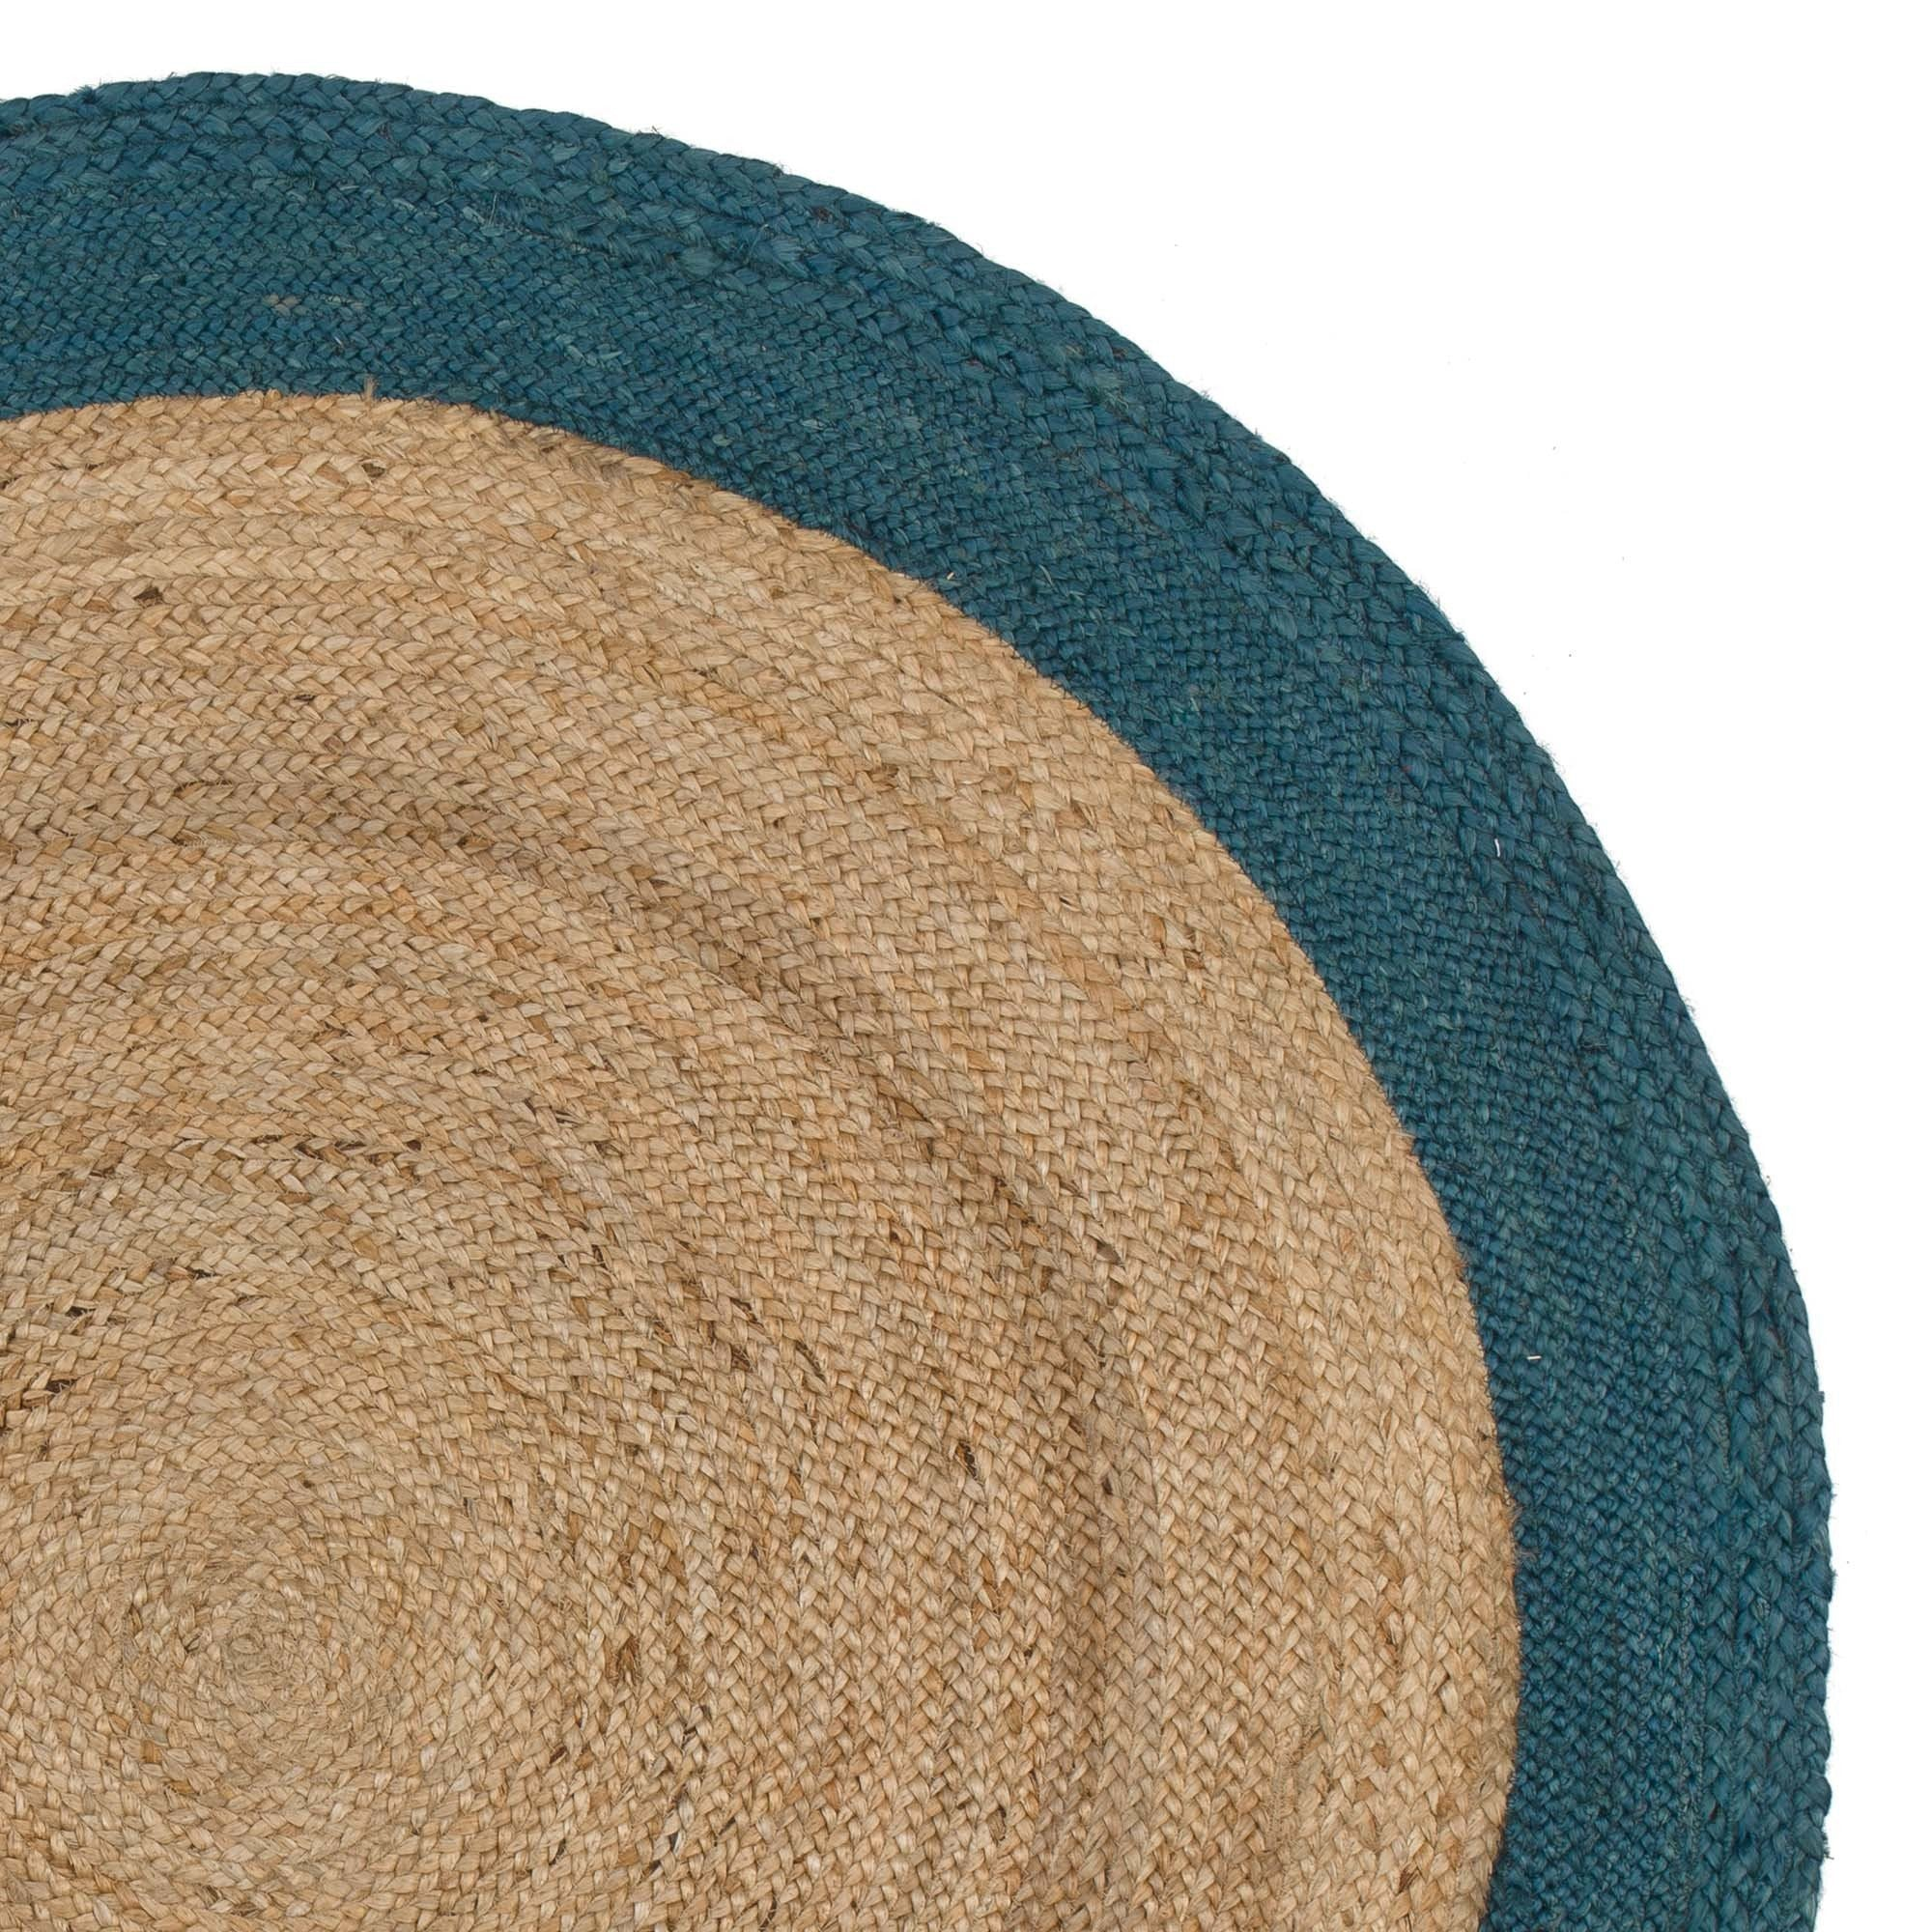 Nandi rug, natural & teal, 100% jute